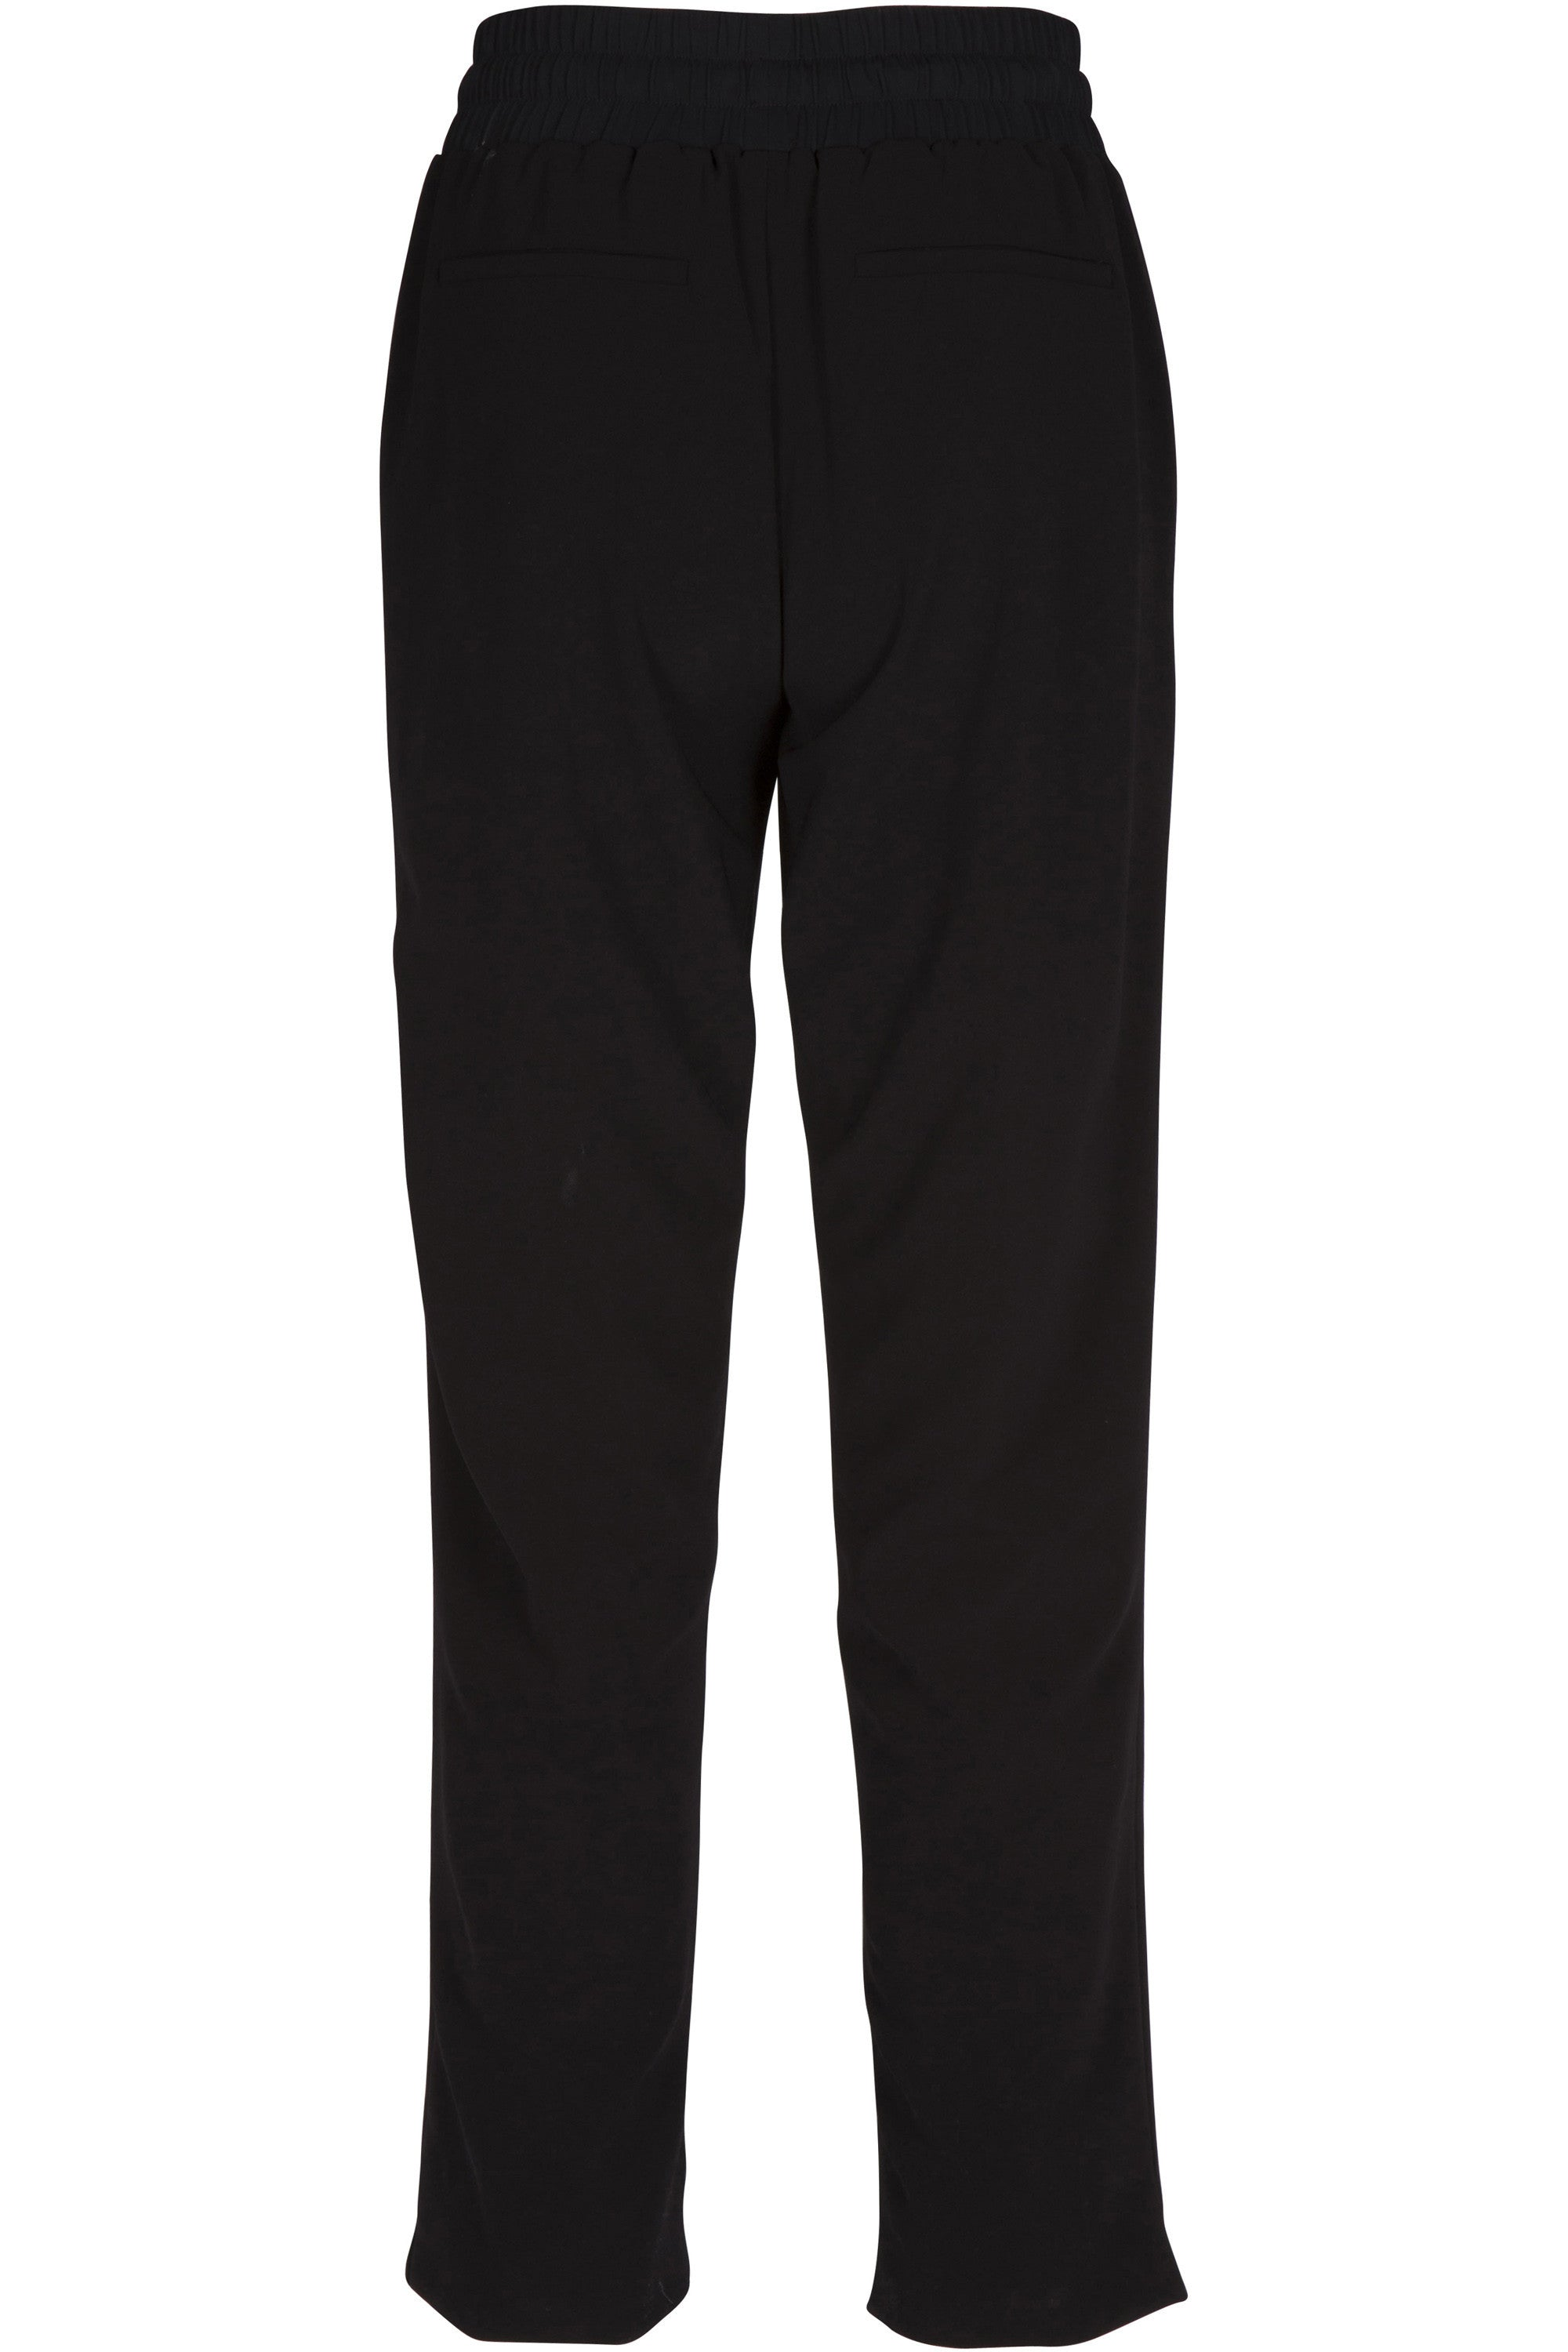 DRAWSTRING TROUSER BOTTOMS by KENDALL + KYLIE